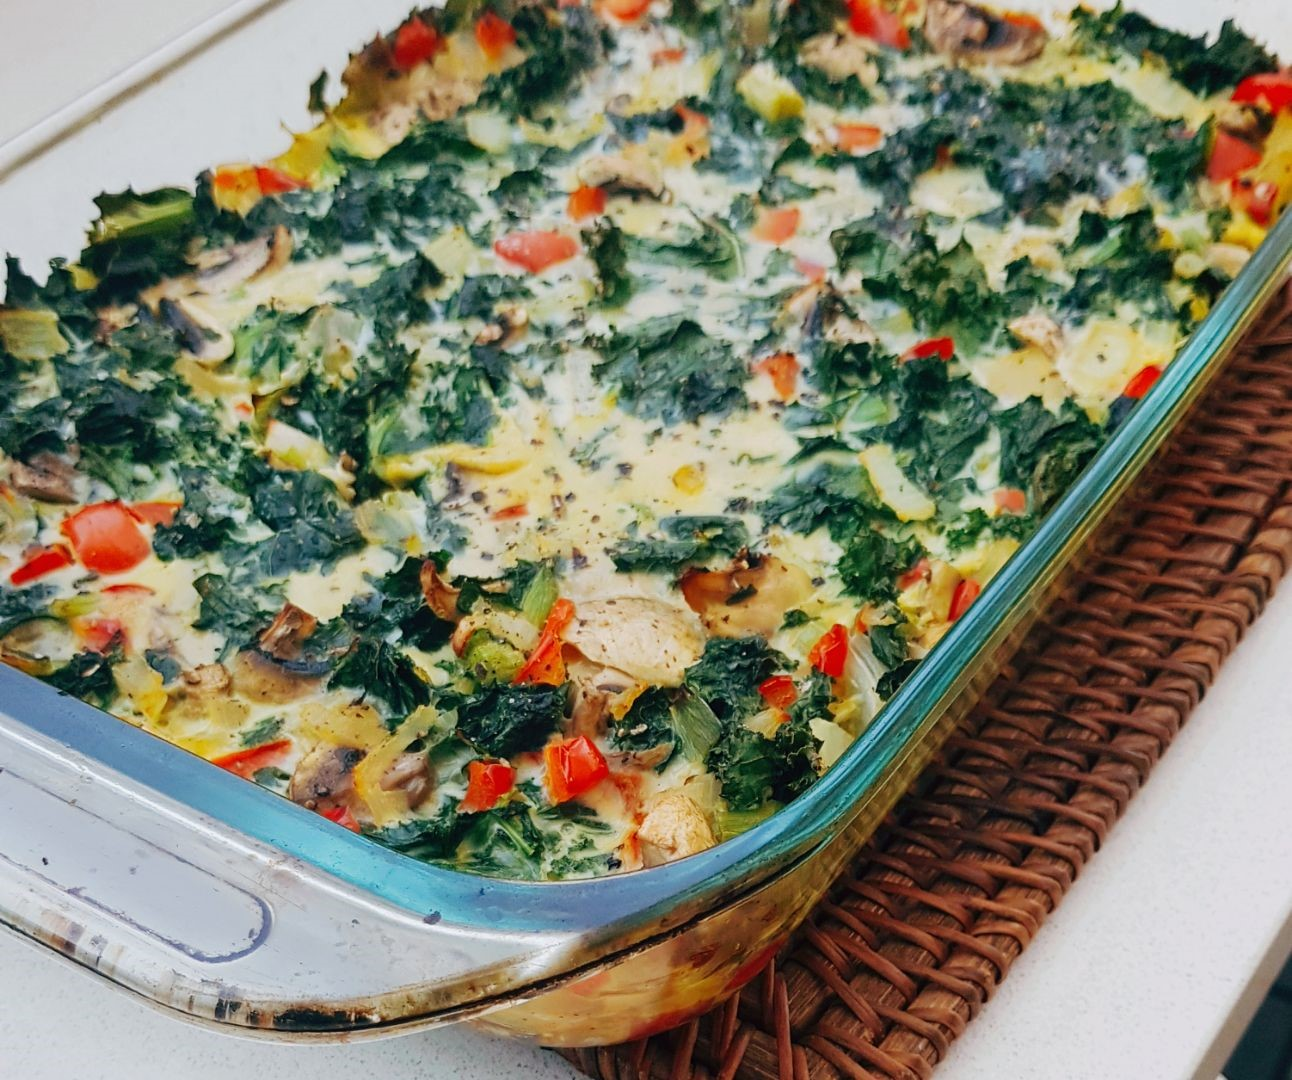 Kale and Vegetable Dairy Free Frittata